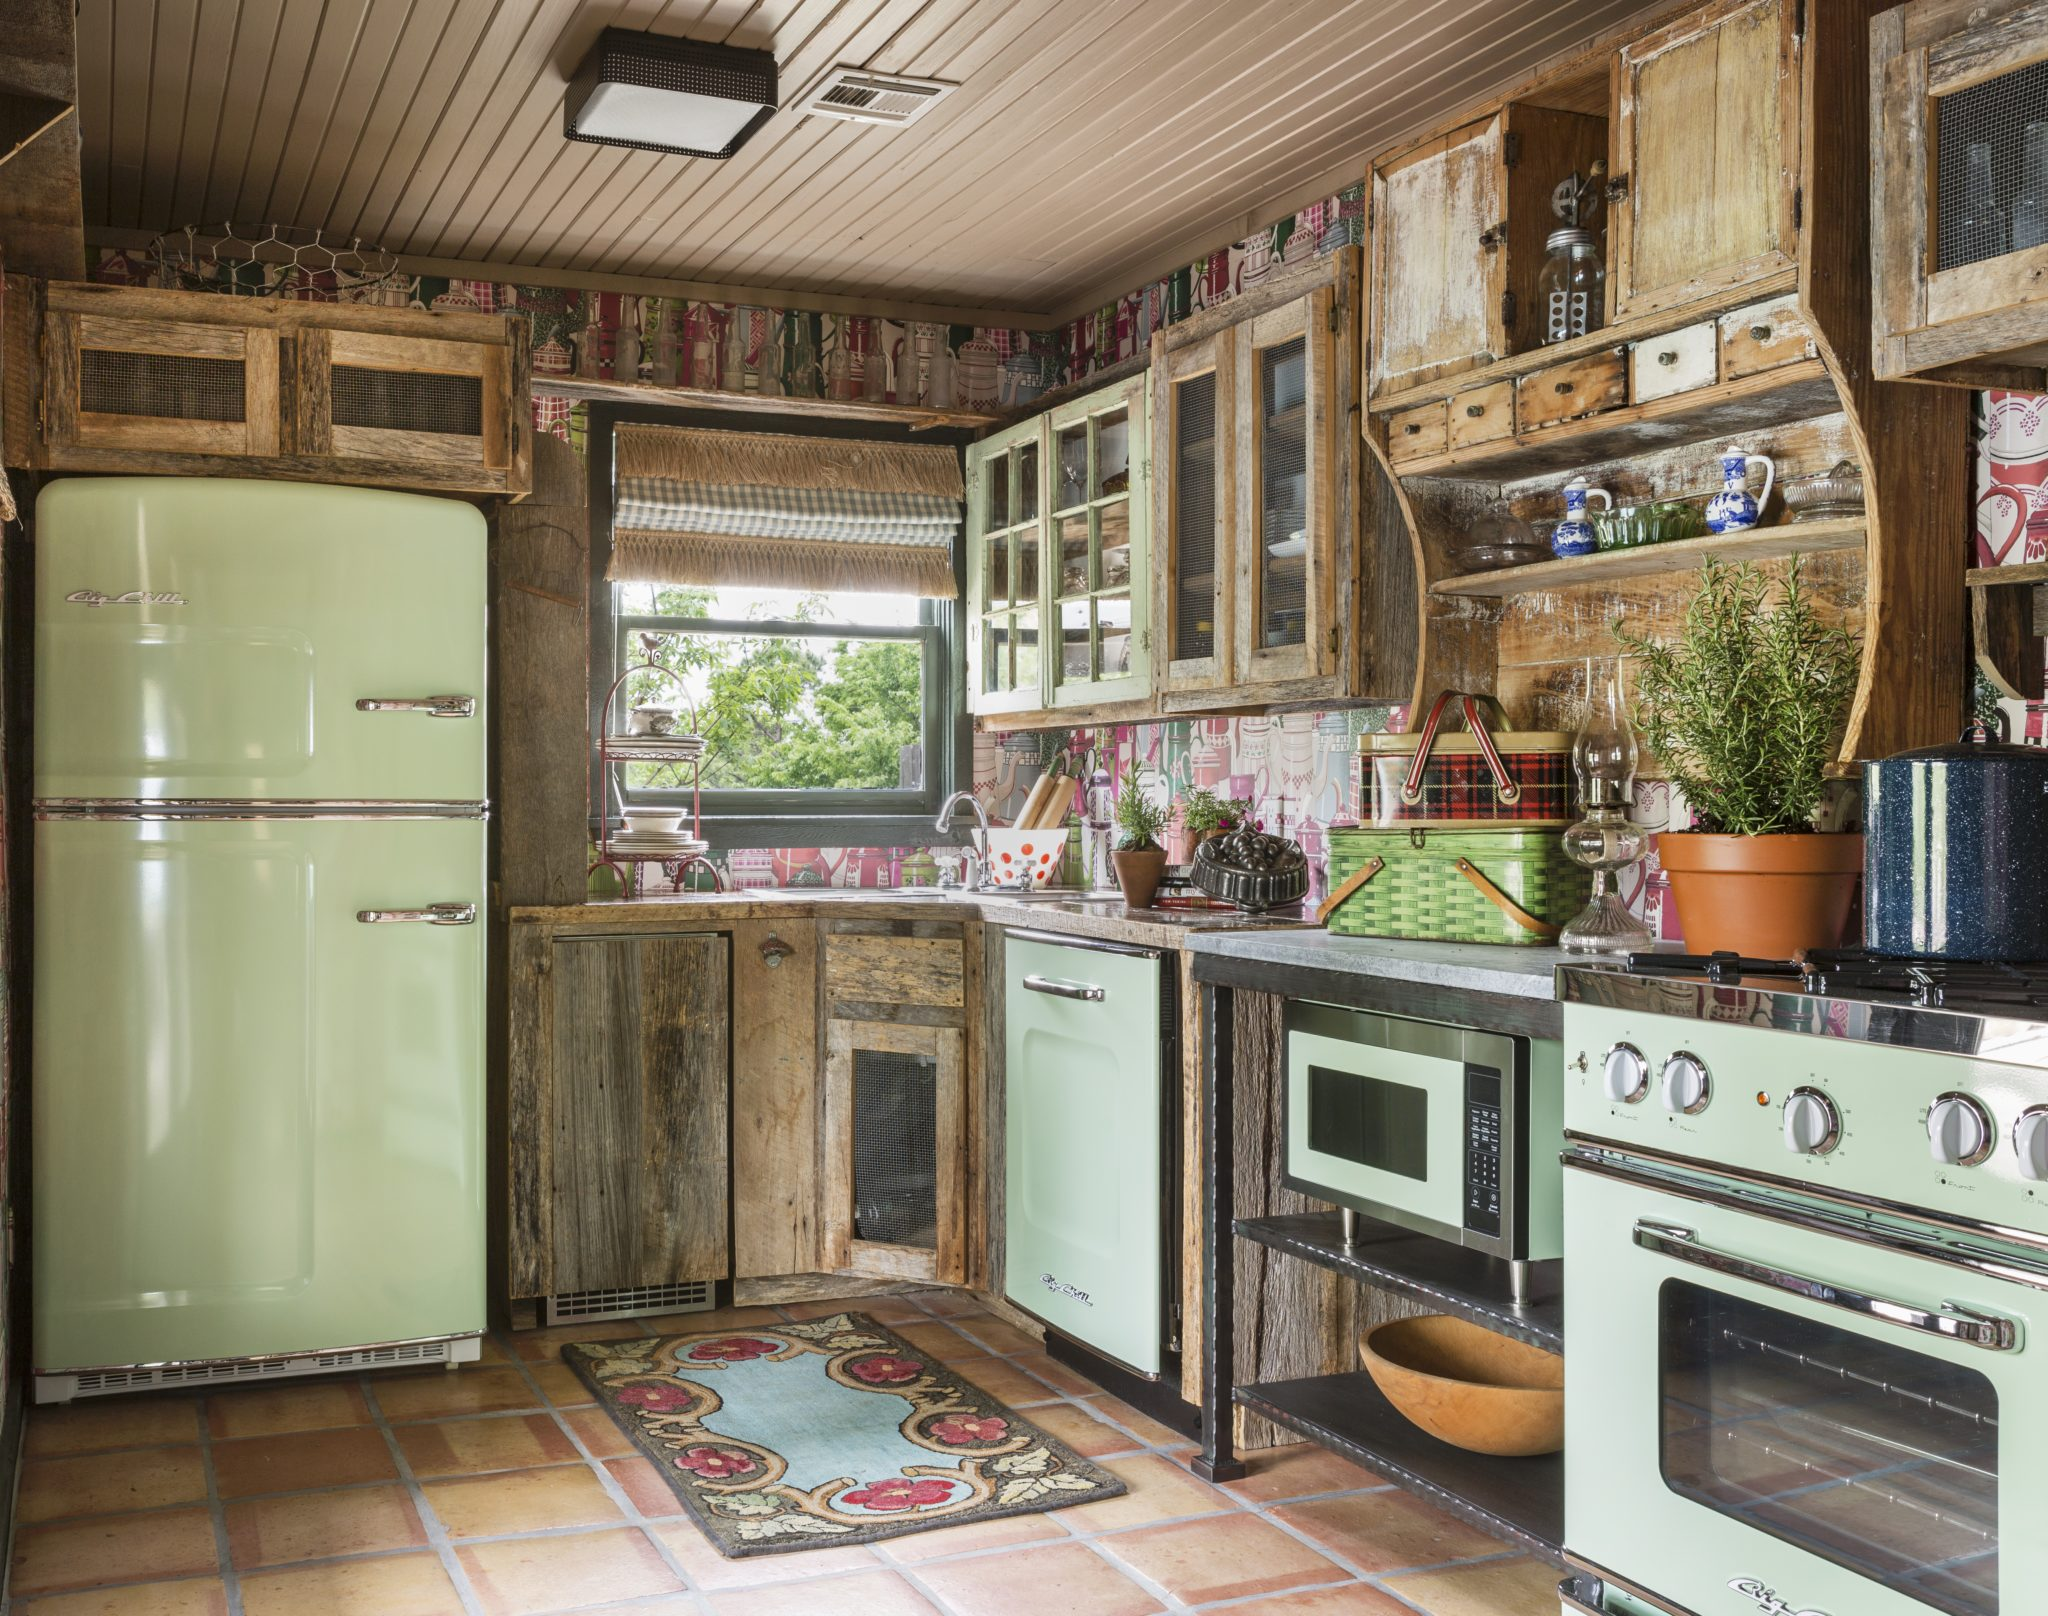 Guest cottage kitchen with mismatched cabinets and vintage-inspired appliances by Goddard Design Group